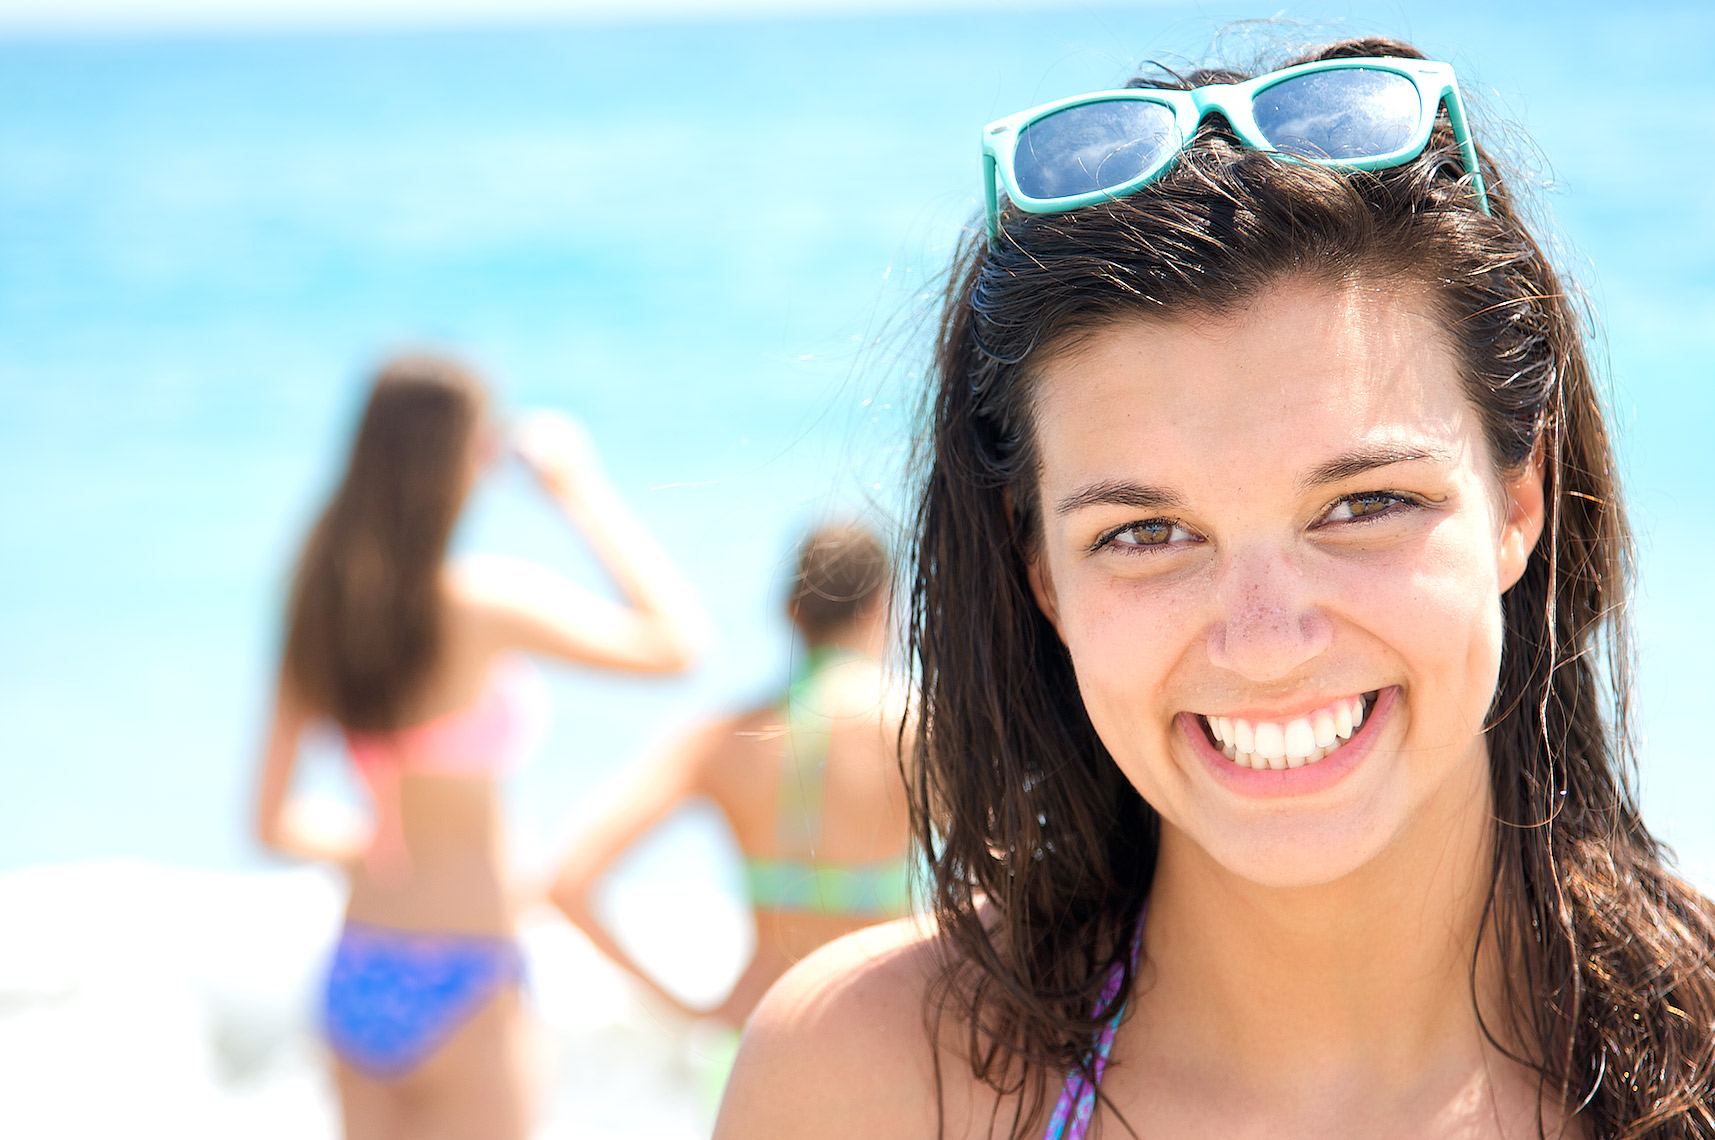 teenage girls having fun at beach, close-up view_A2D3490_Robert-Holland.jpg